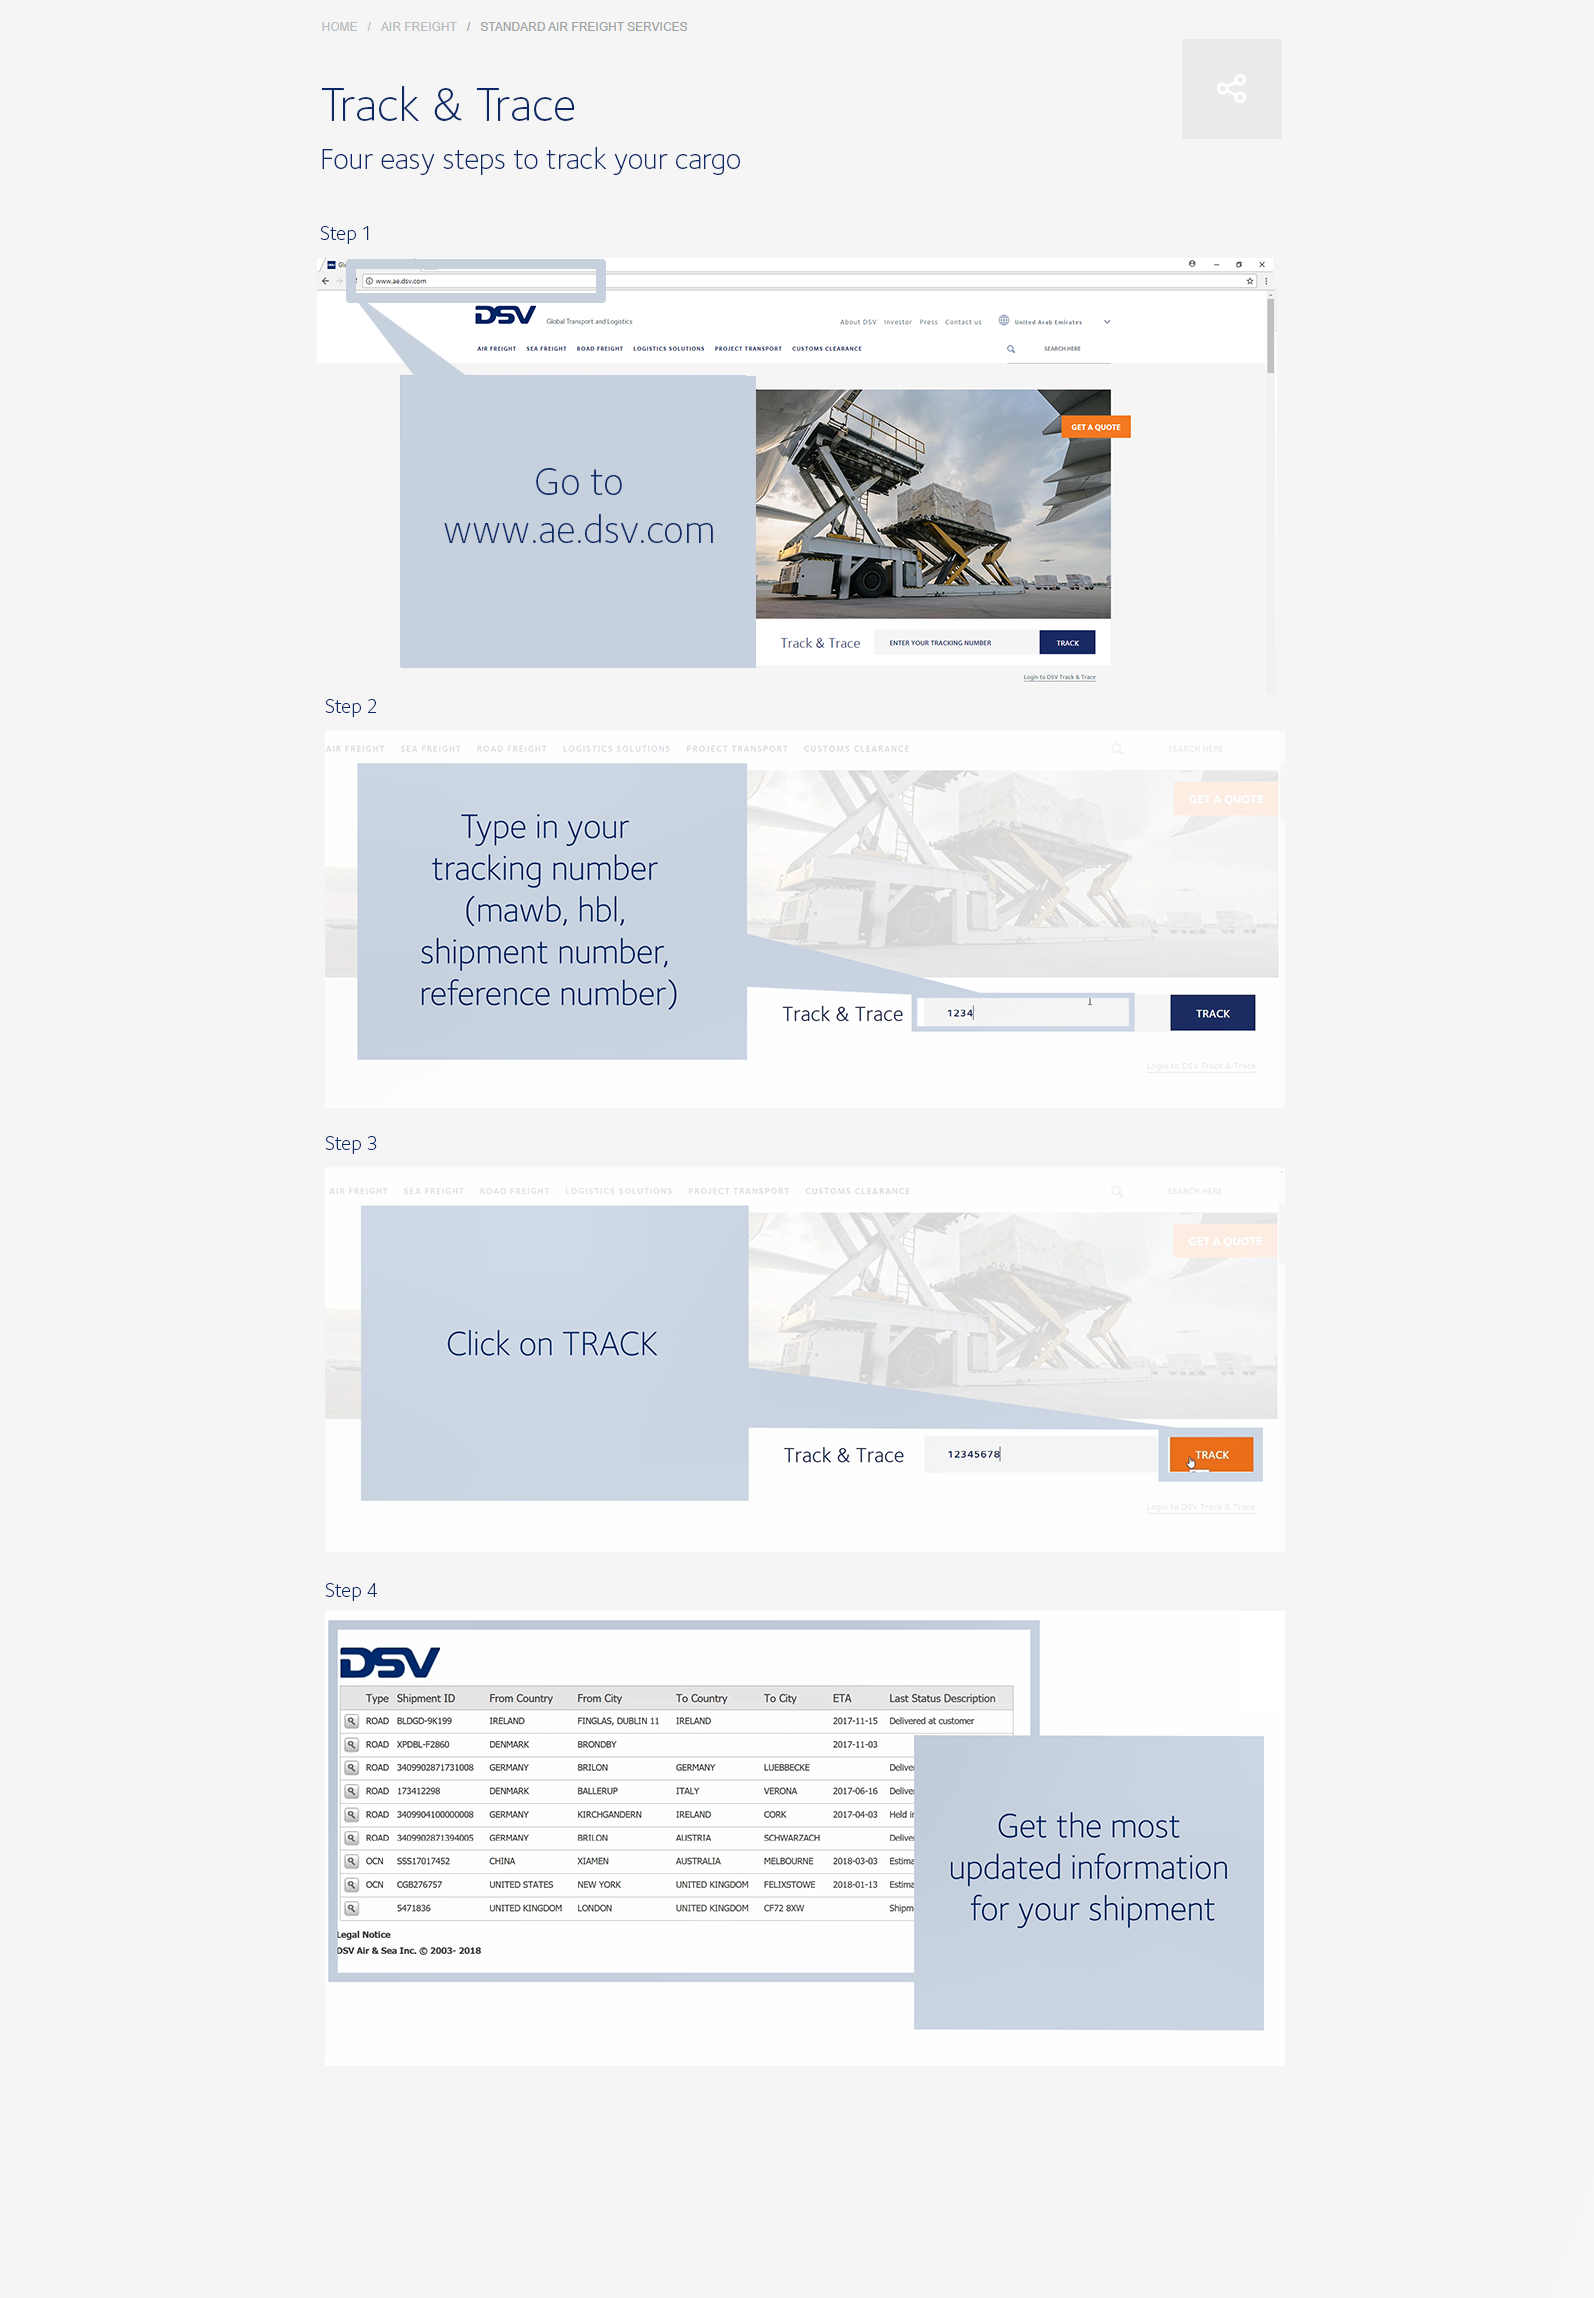 Learn to track and trace | DSV